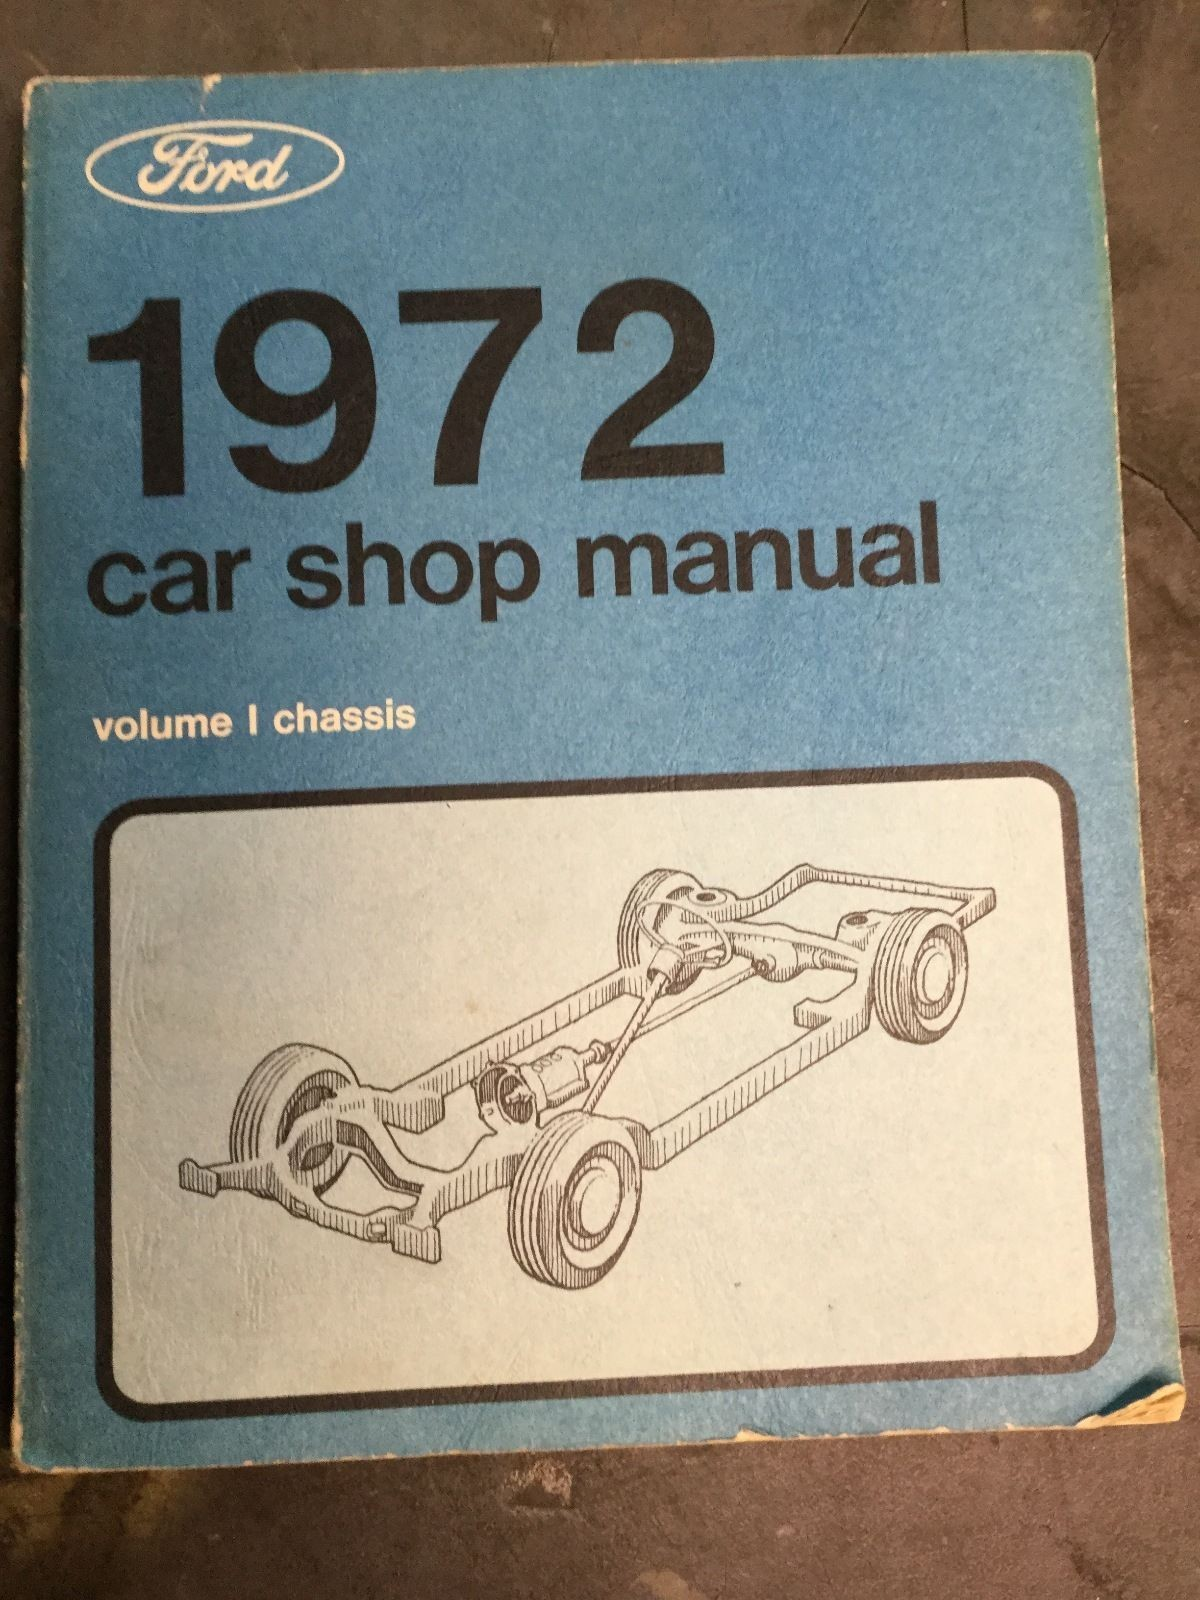 1972 Ford Car Shop Manual-Vol 1-Chassis F